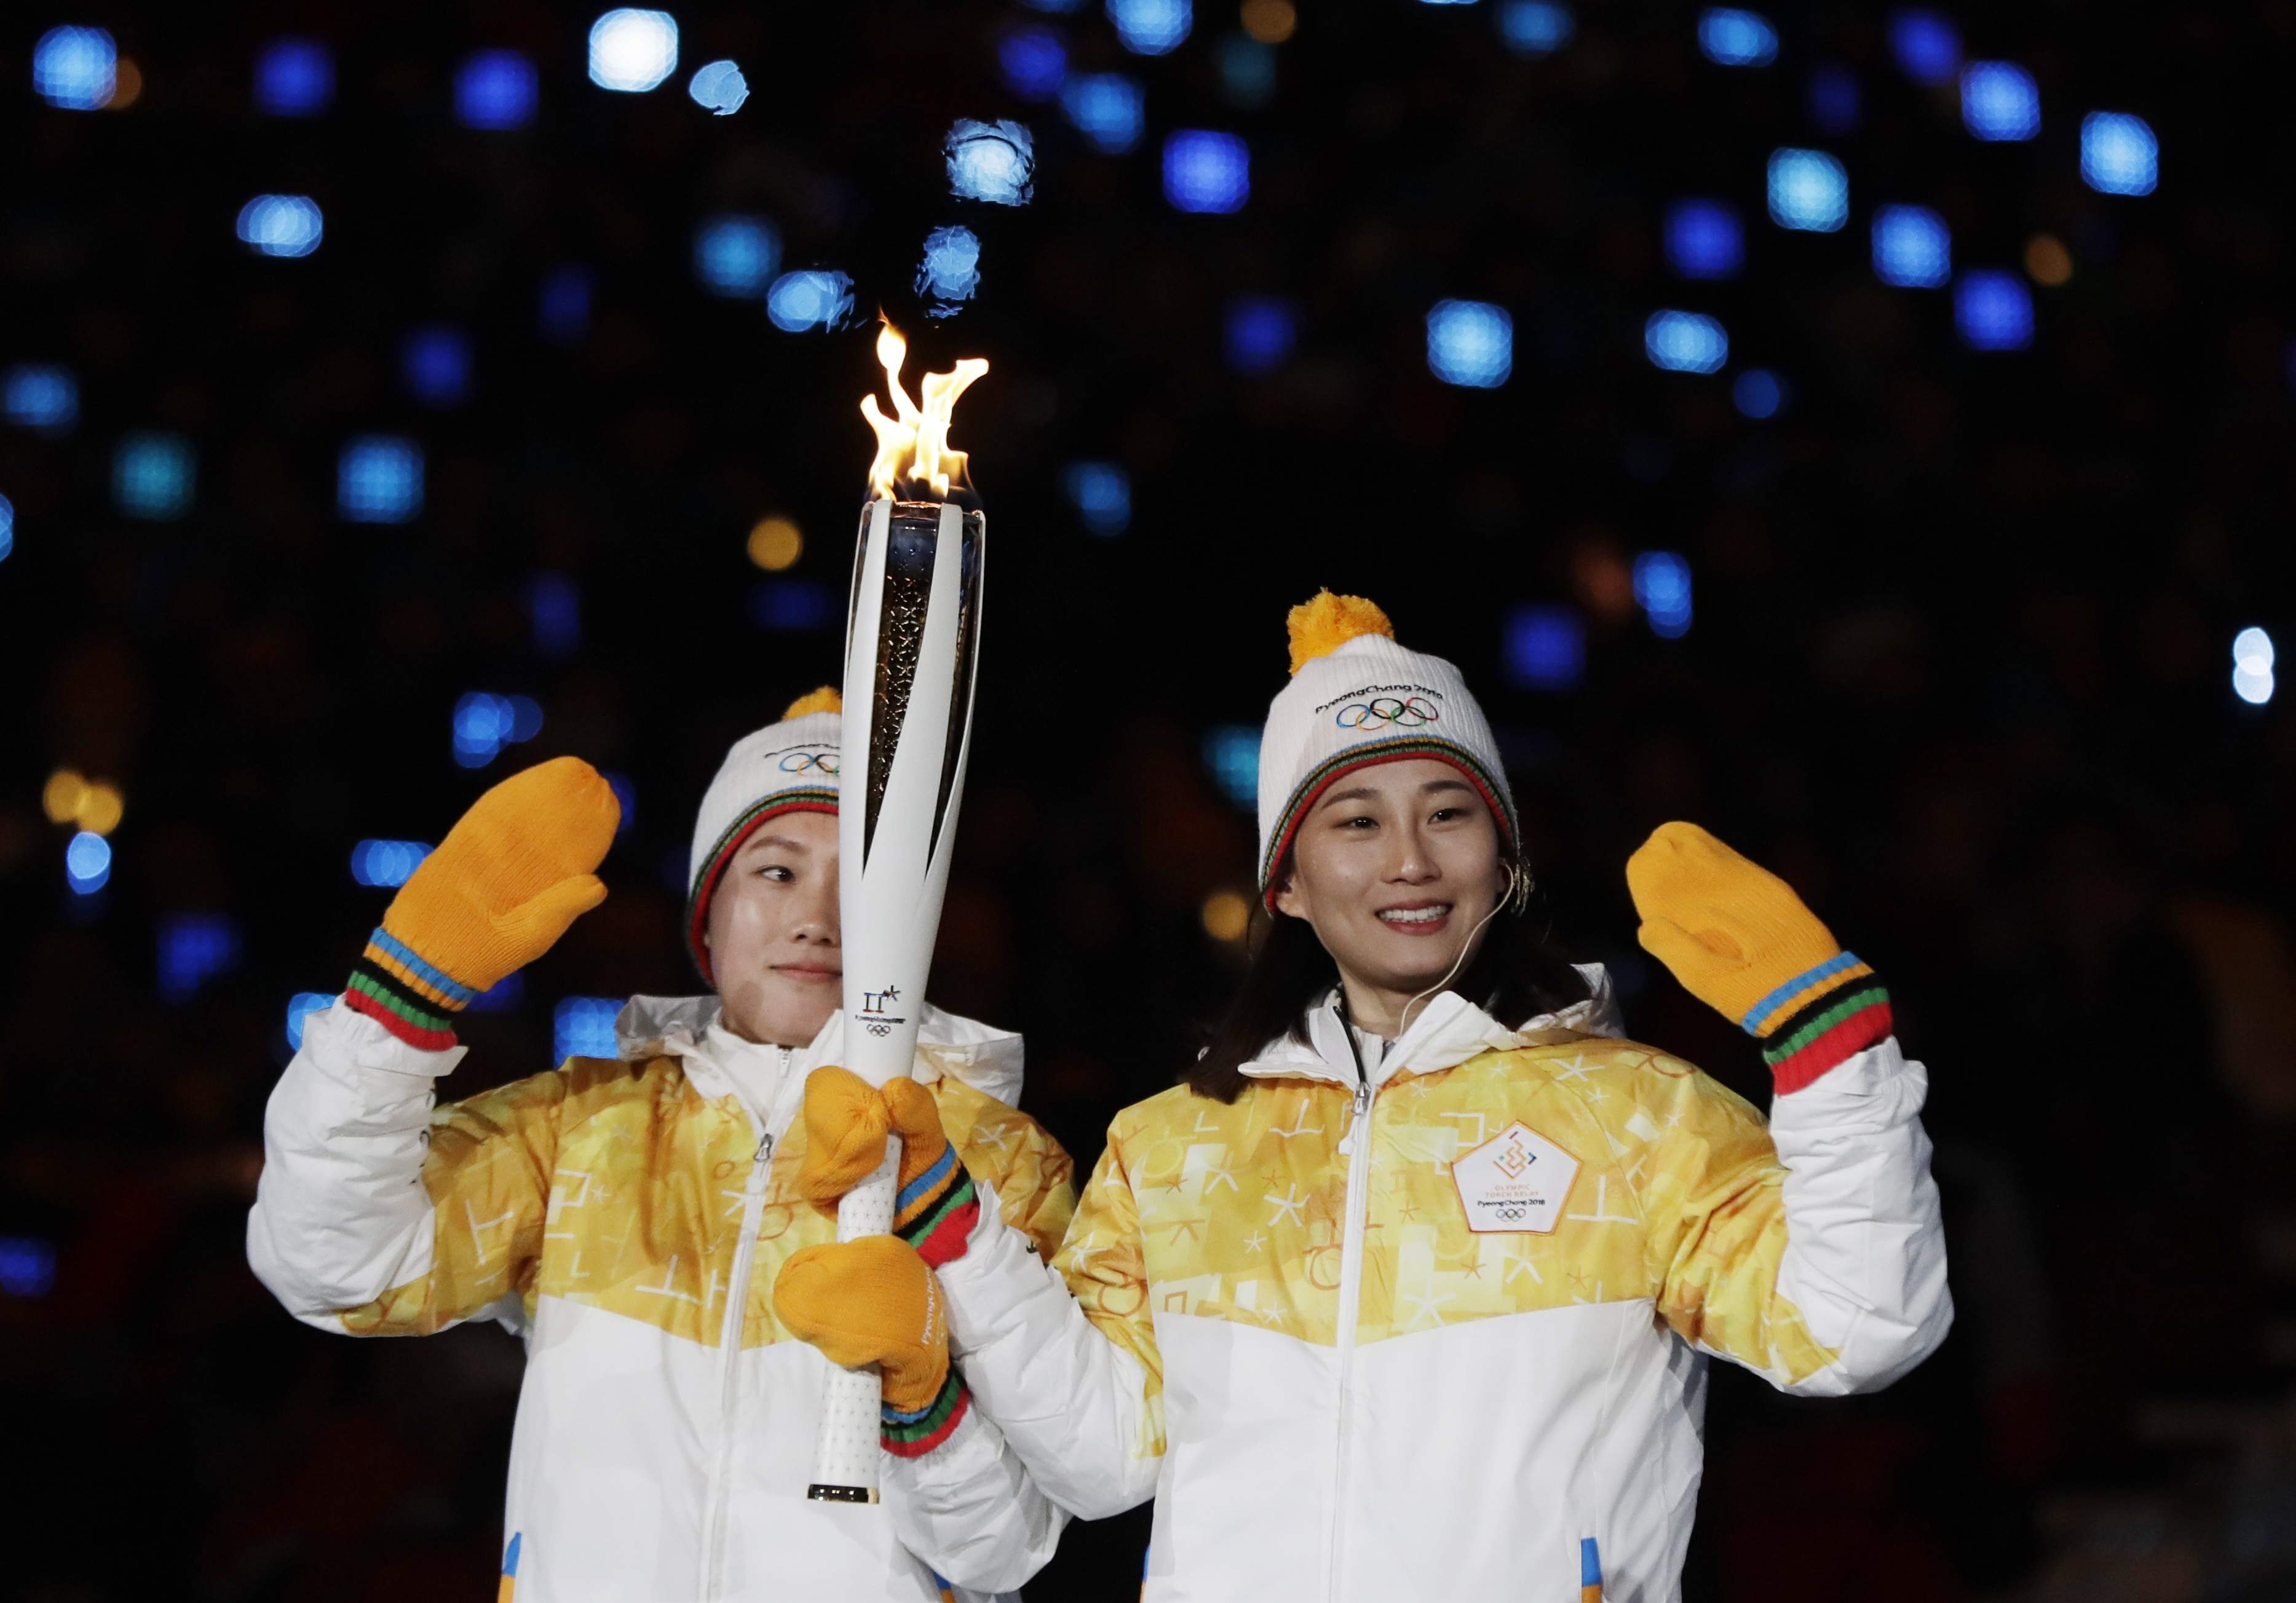 North Korea's Jong Su Hyon, left, and South Korea's Park Jong-ah carry the torch in the stadium during the opening ceremony of the 2018 Winter Olympics in Pyeongchang, South Korea, Friday, Feb. 9, 2018. (AP Photo/Petr David Josek)